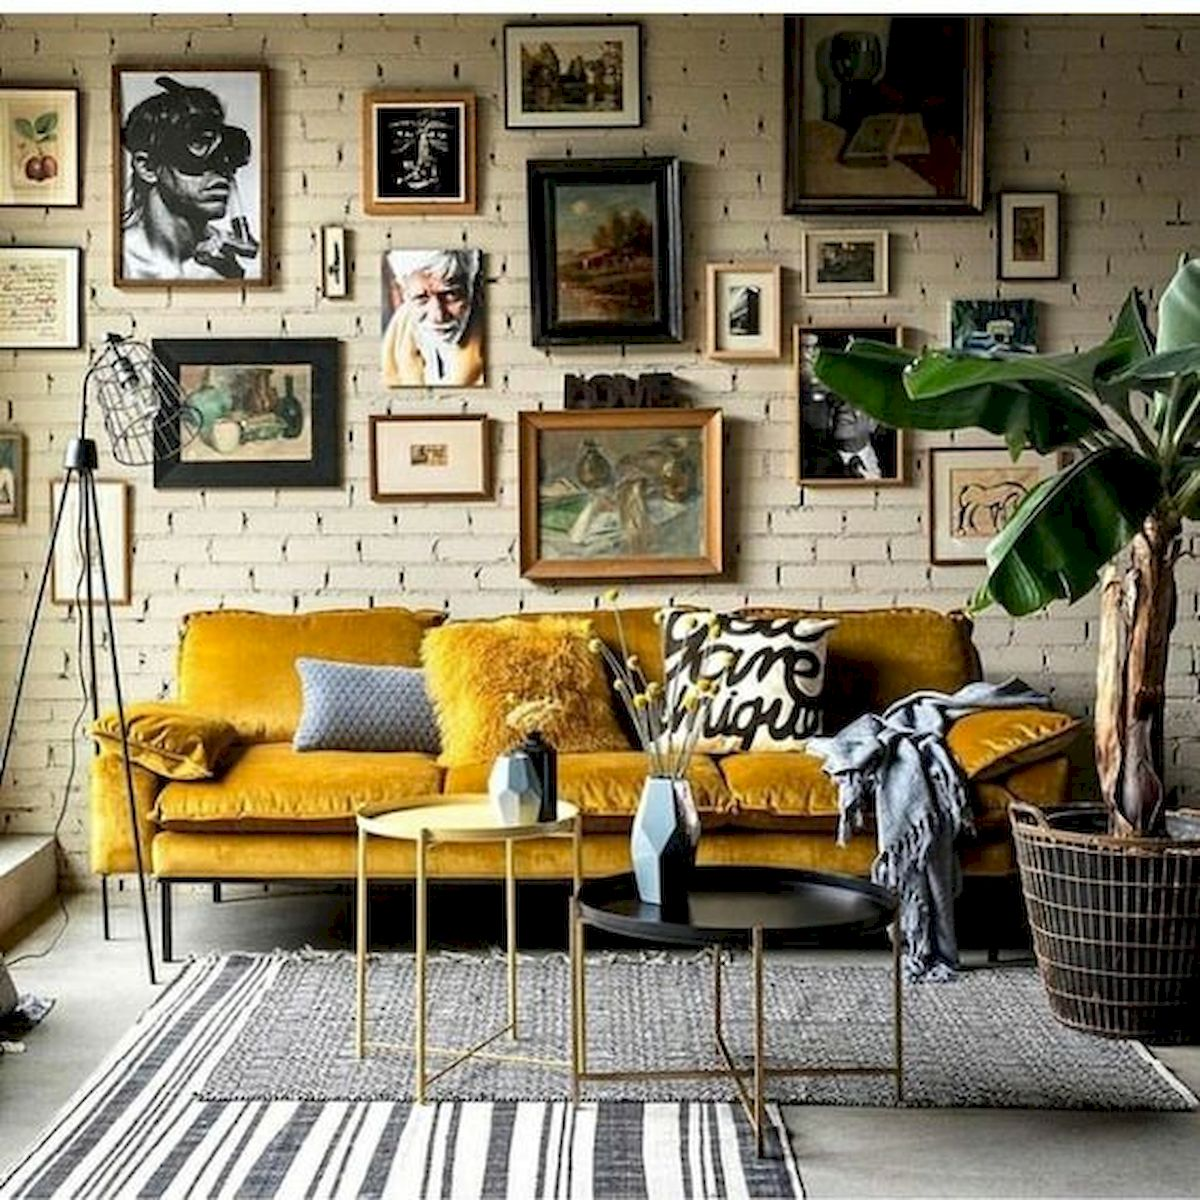 73 Eclectic Living Room Decor Ideas (12)